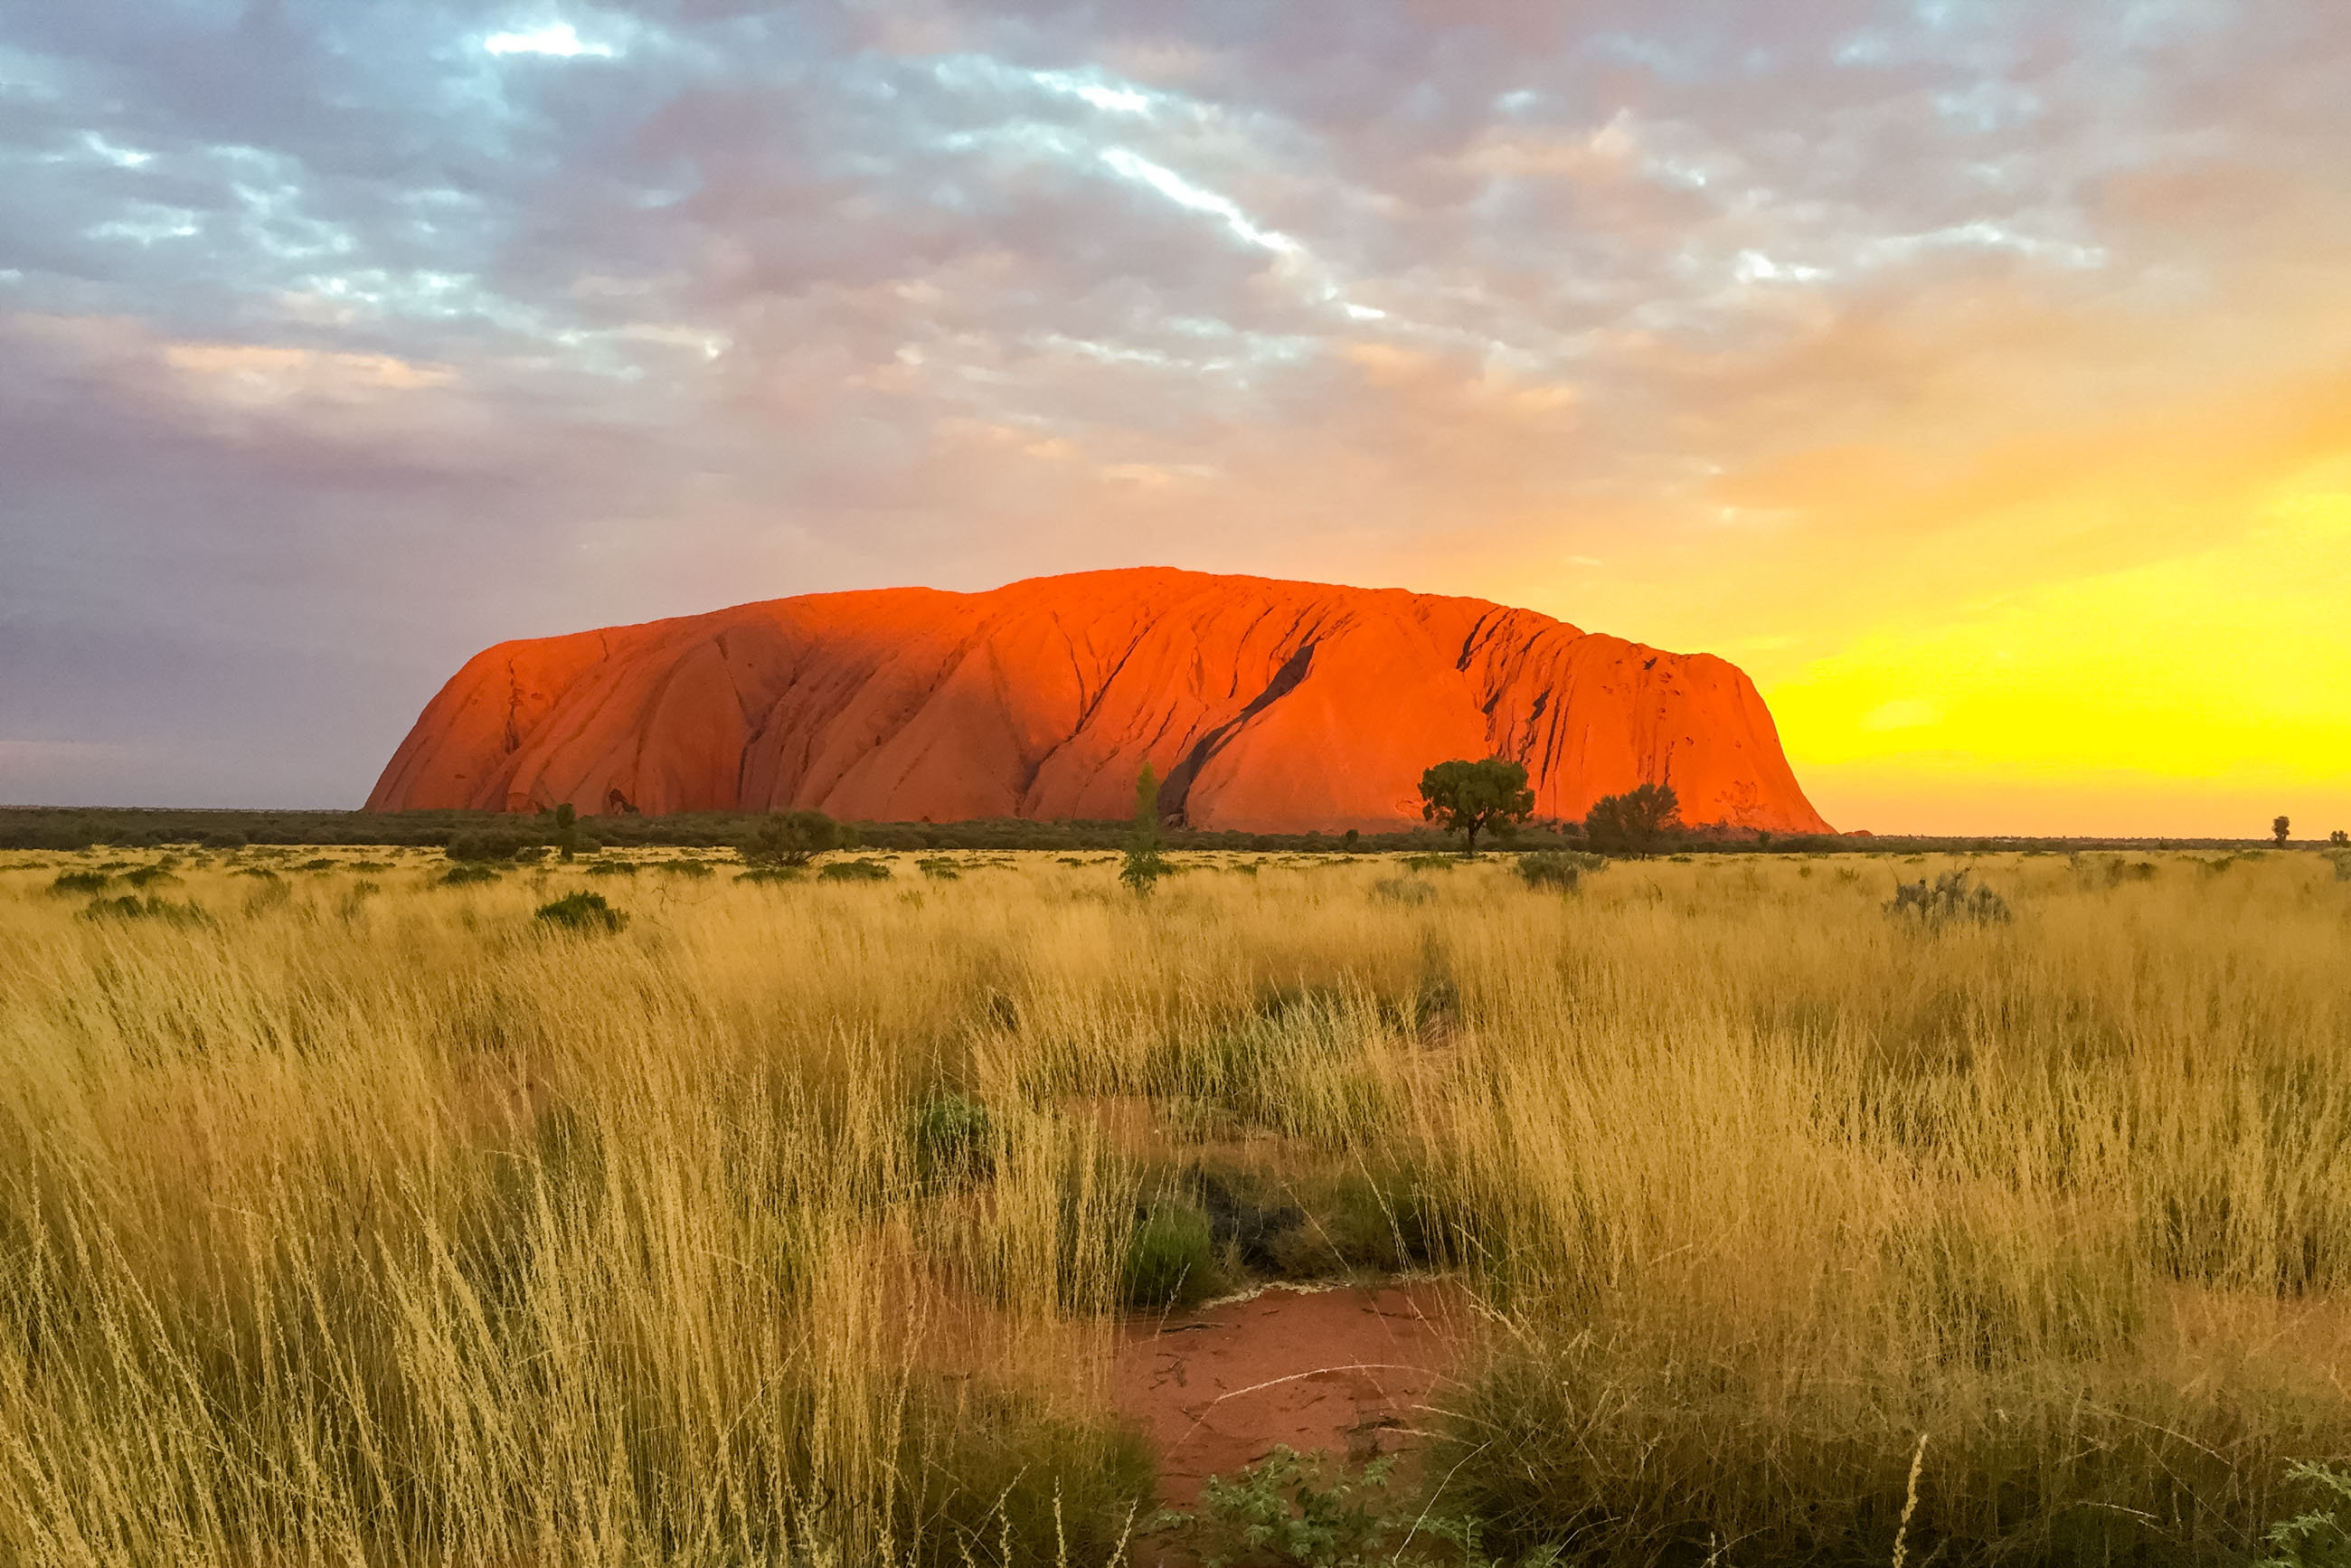 https://bubo.sk/uploads/galleries/5028/veron_hulikova_australia_severne_teritorium_uluru8.jpg